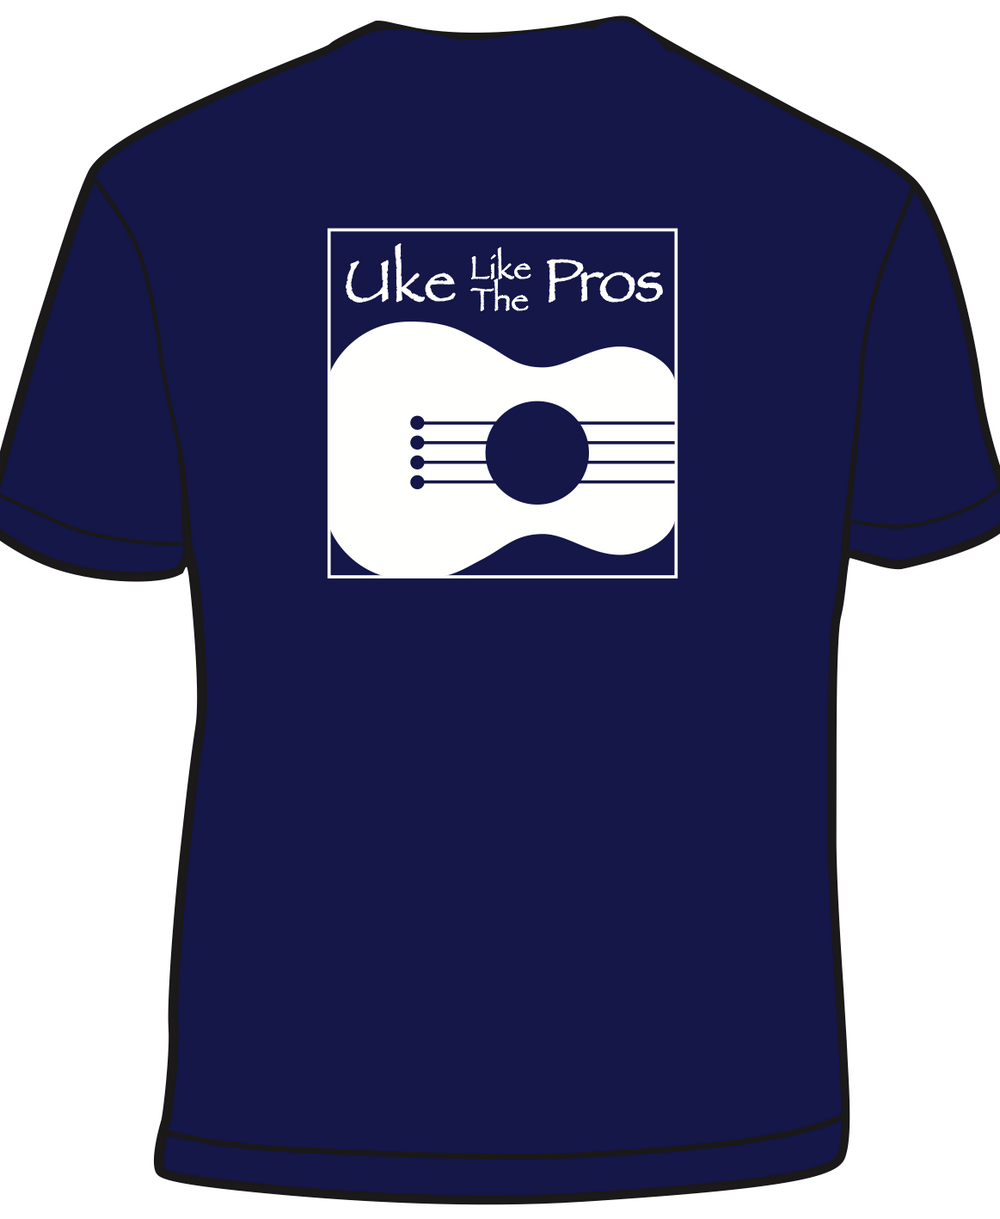 Uke Like The Pros T-Shirt (Original Logo)